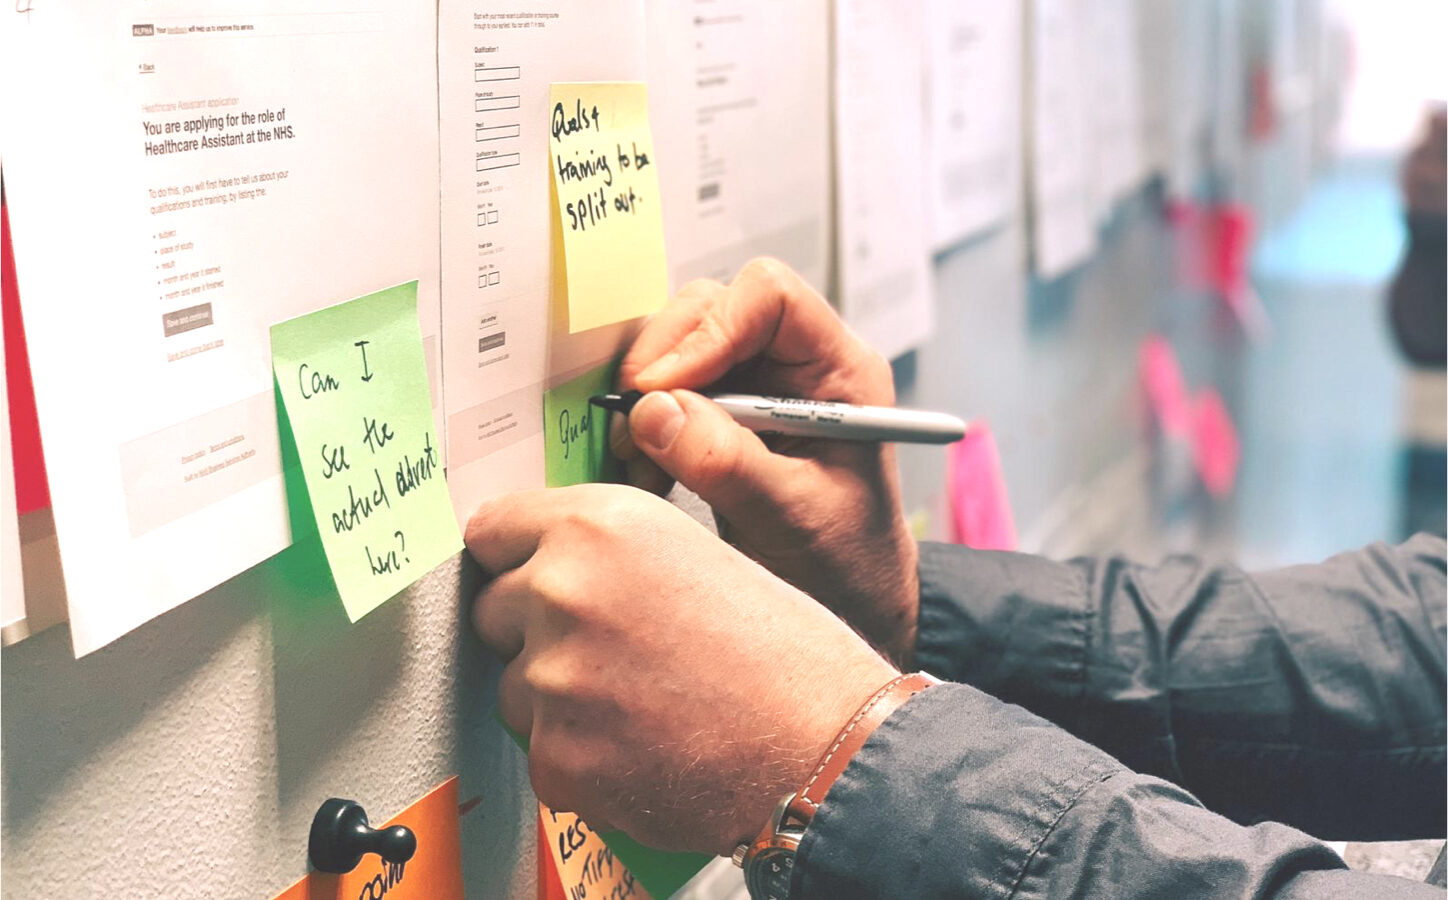 Member of the team writing on post it notes